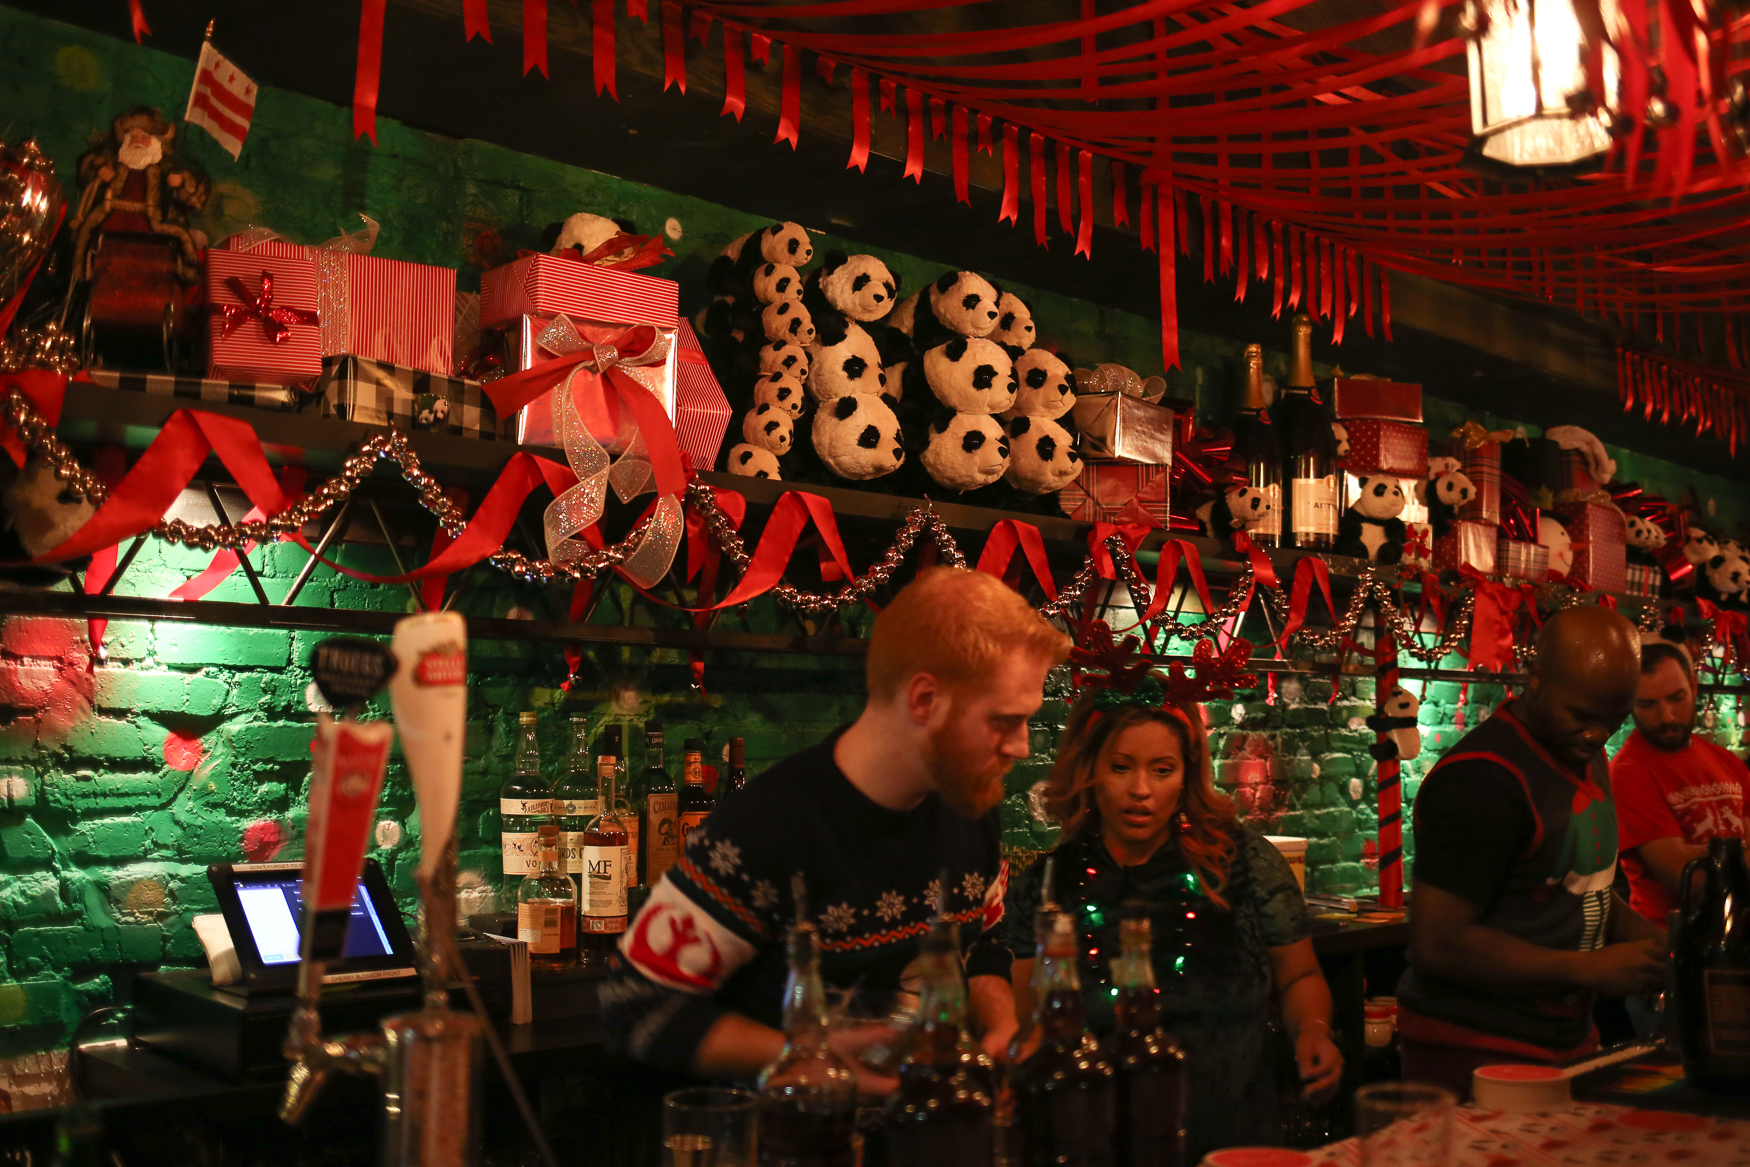 The Miracle on Seventh Street Pop-Up Bar is back. Between November 23 and December 31, you can drift through several panda-themed bars, including an homage to Bei Bei's romp in the snow and a Hanukkah panda room. Although not every drink is panda themed, Santa Bei Bei comes in an Instagram-friendly panda-shaped mug. The bar will be open between Thursday and Sunday and drinks range from $9-$14. (Amanda Andrade-Rhoades/DC Refined)